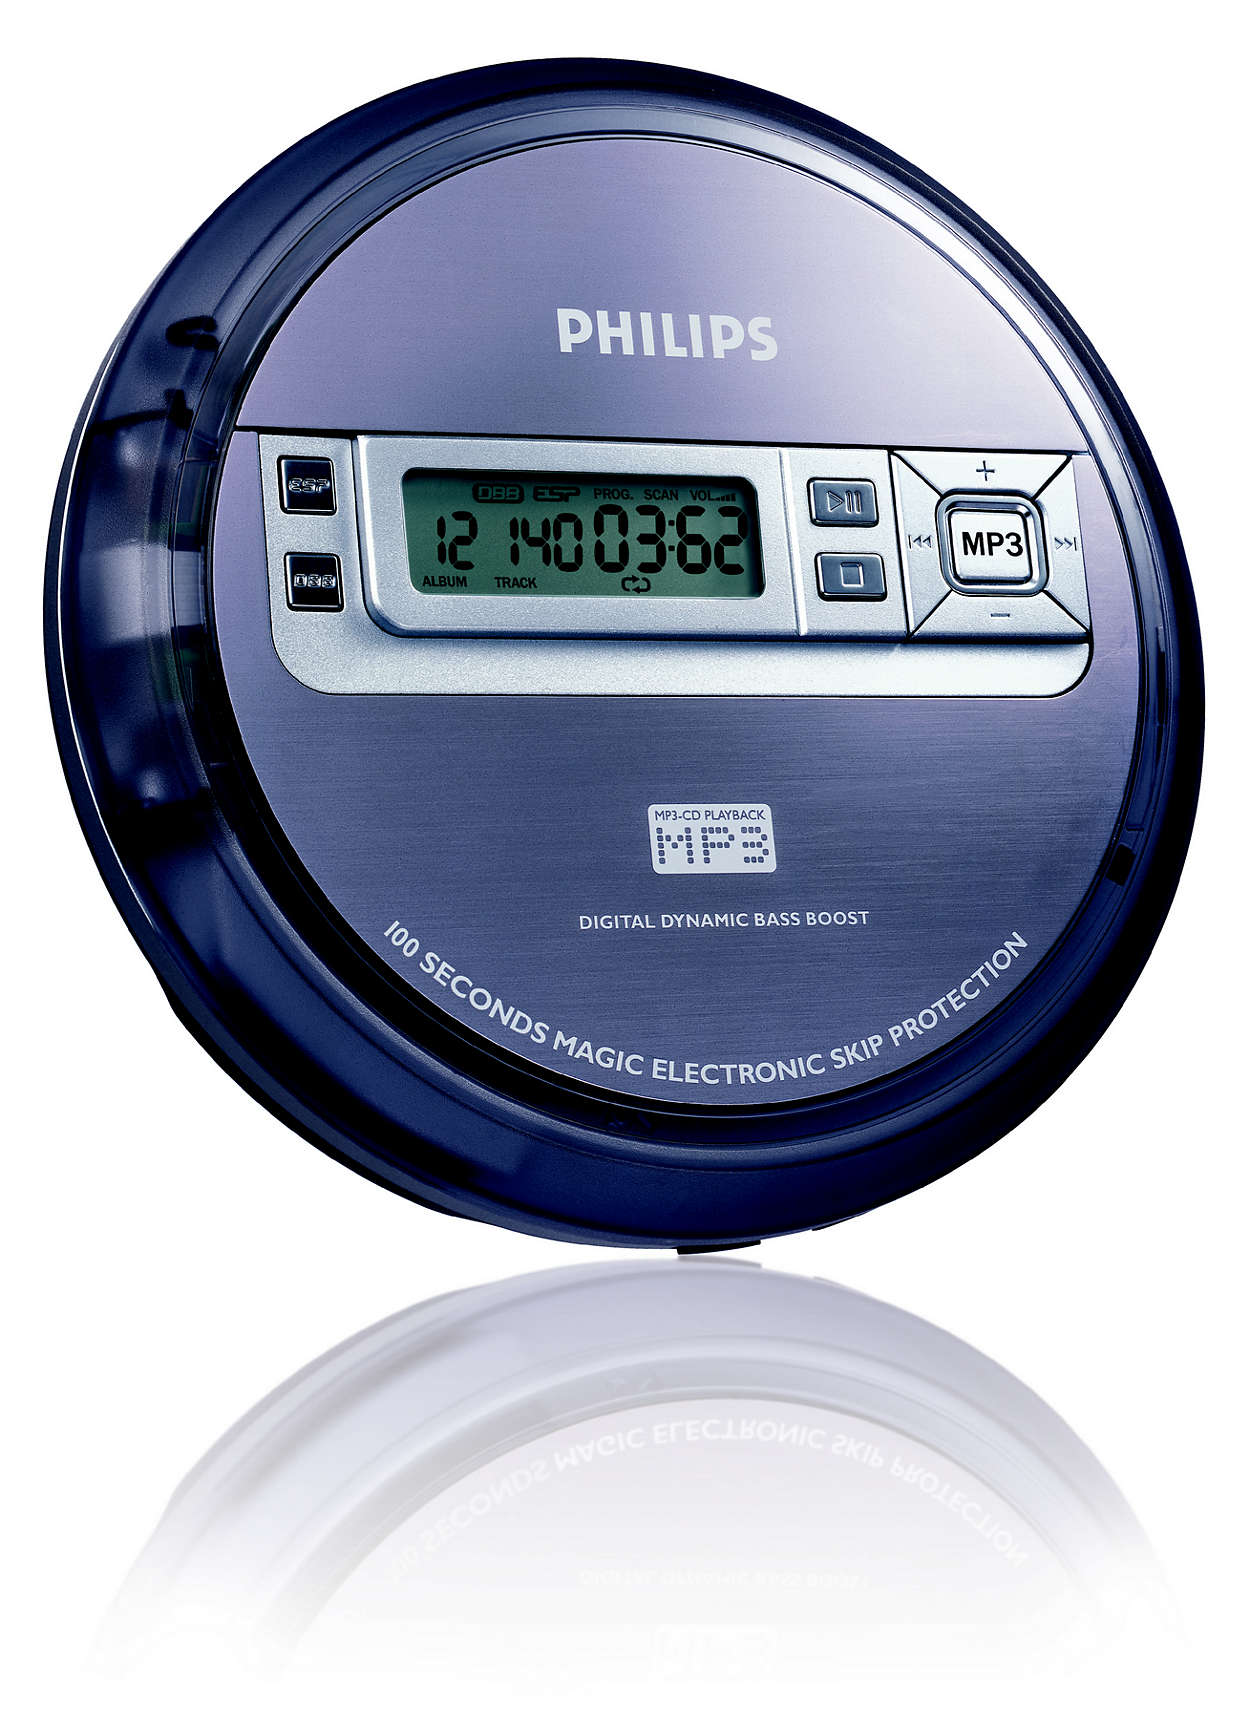 portable mp3 cd player exp2550 17 philips. Black Bedroom Furniture Sets. Home Design Ideas